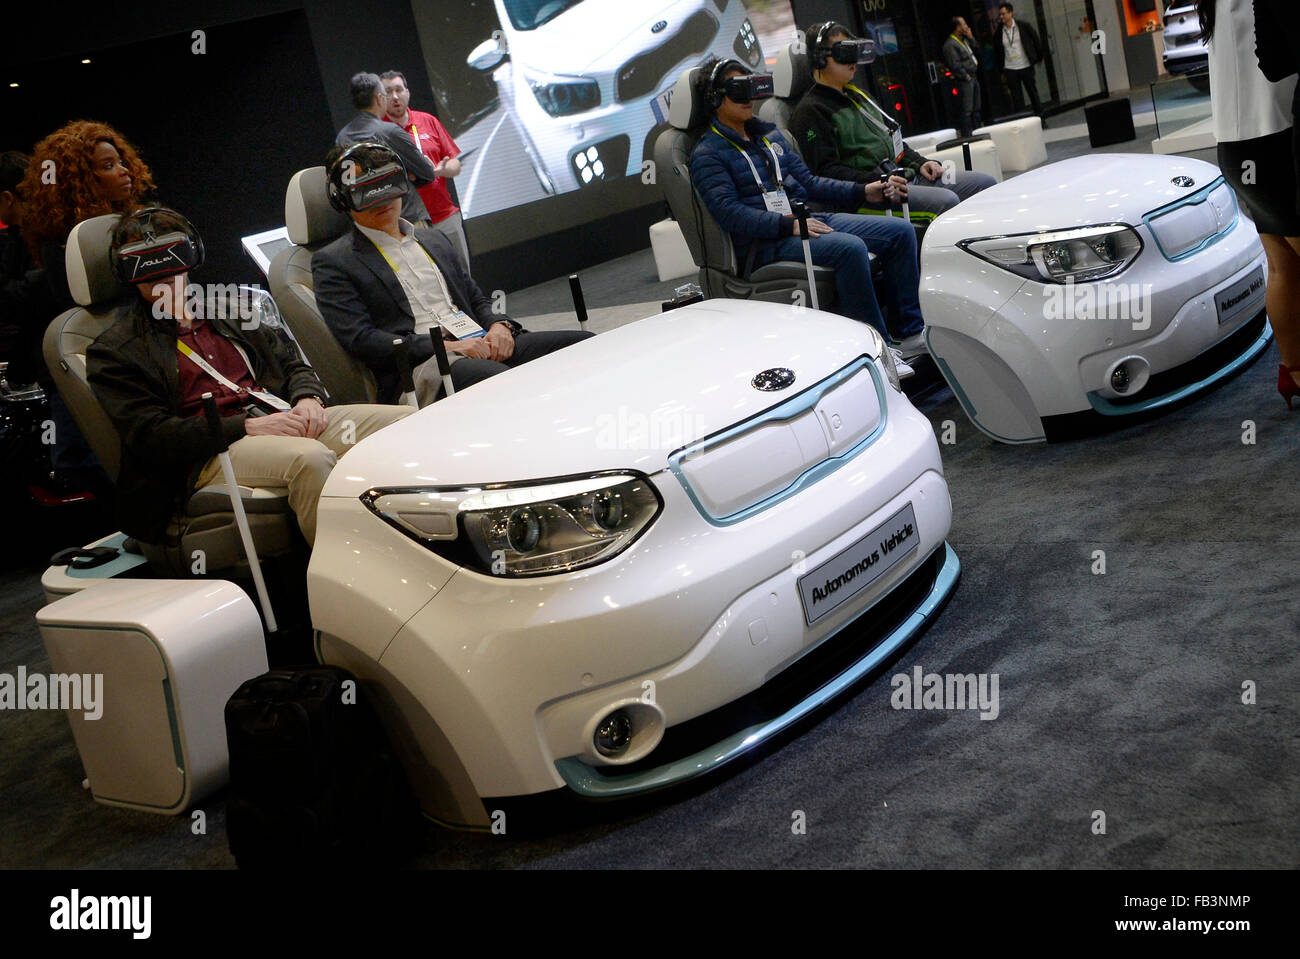 las vegas nv usa 8th jan ces attendees try out the kia vr display during the ces show fridayphoto by gene blevinsla daily